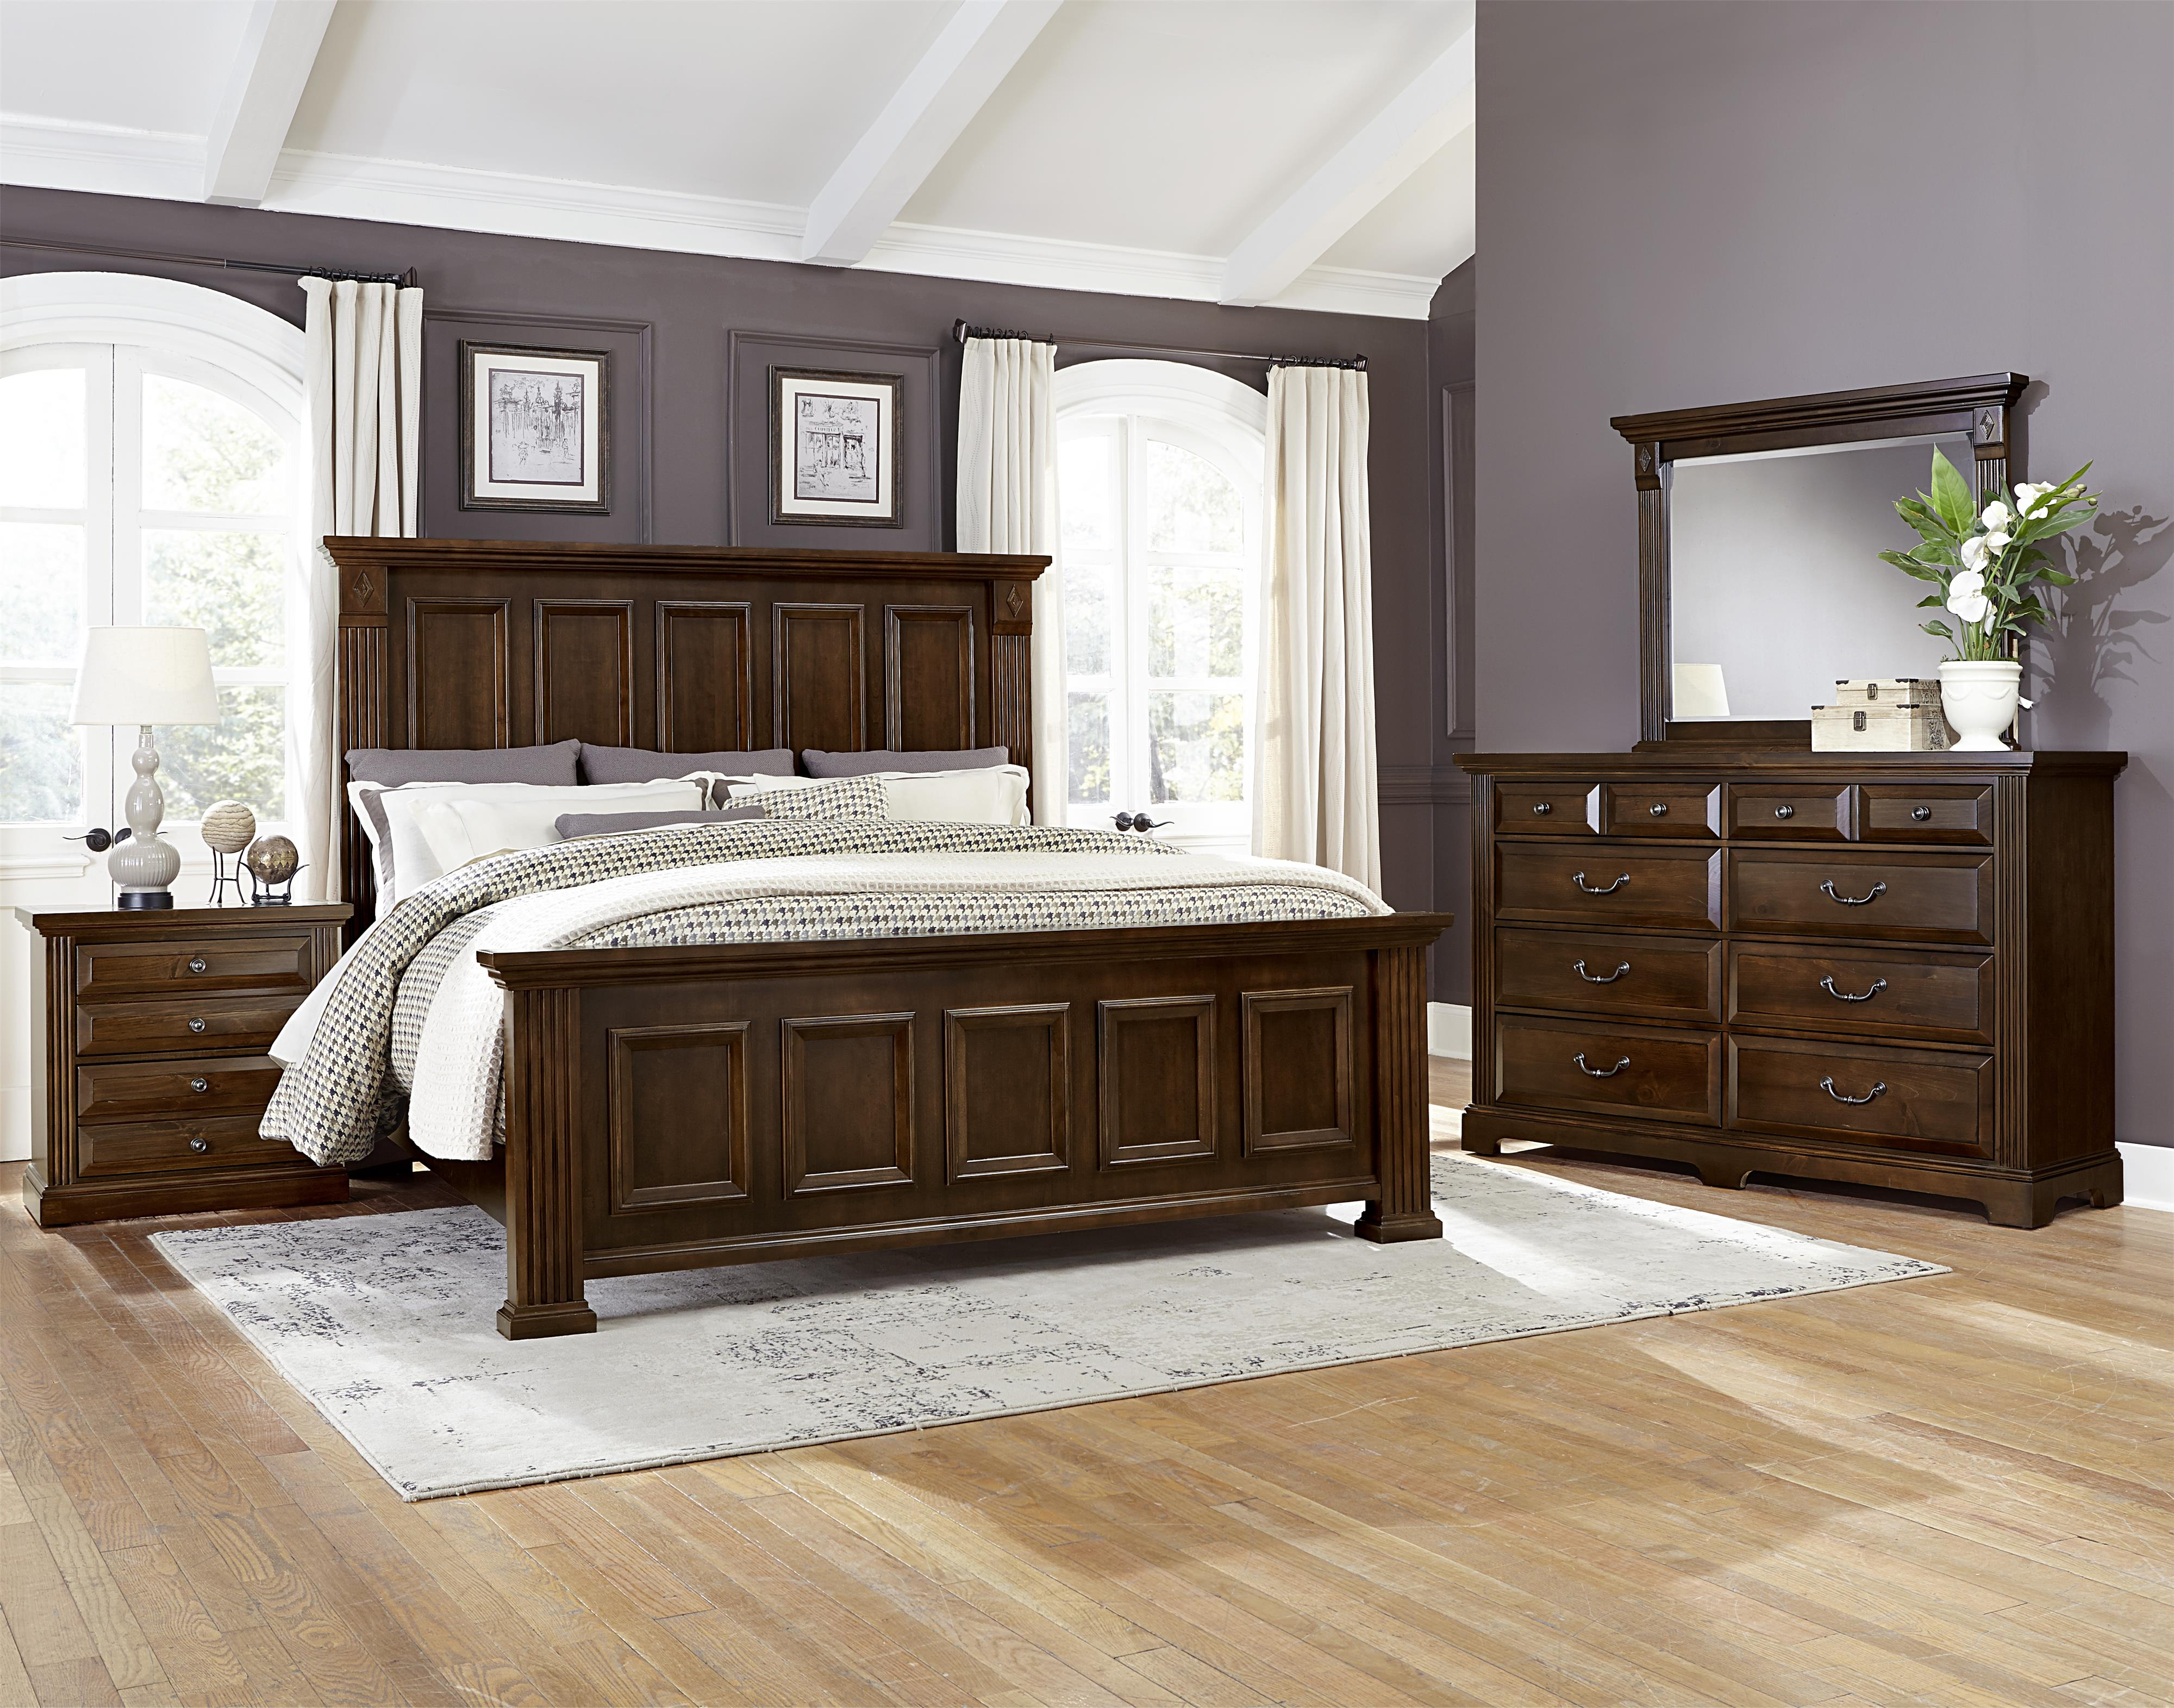 Vaughan Bassett Woodlands Transitional Queen Mansion Storage Bed With 2  Footboard Drawers | Powellu0027s Furniture And Mattress | Platform Beds/Low  Profile Beds